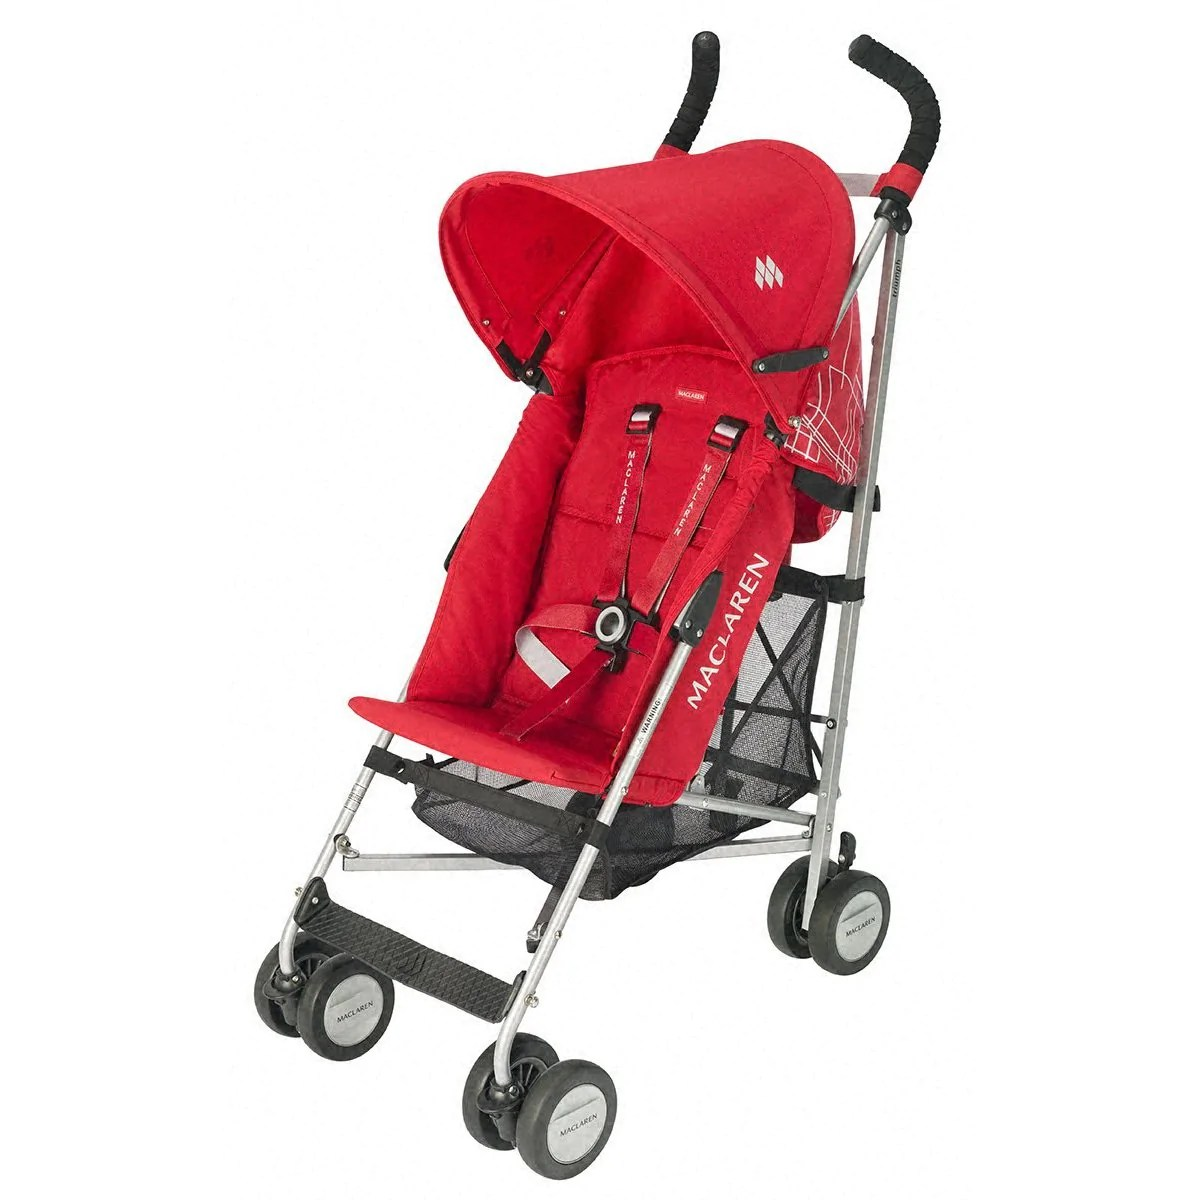 Double Stroller Expensive Baby Stroller To Buy Online Or Not Anb Baby